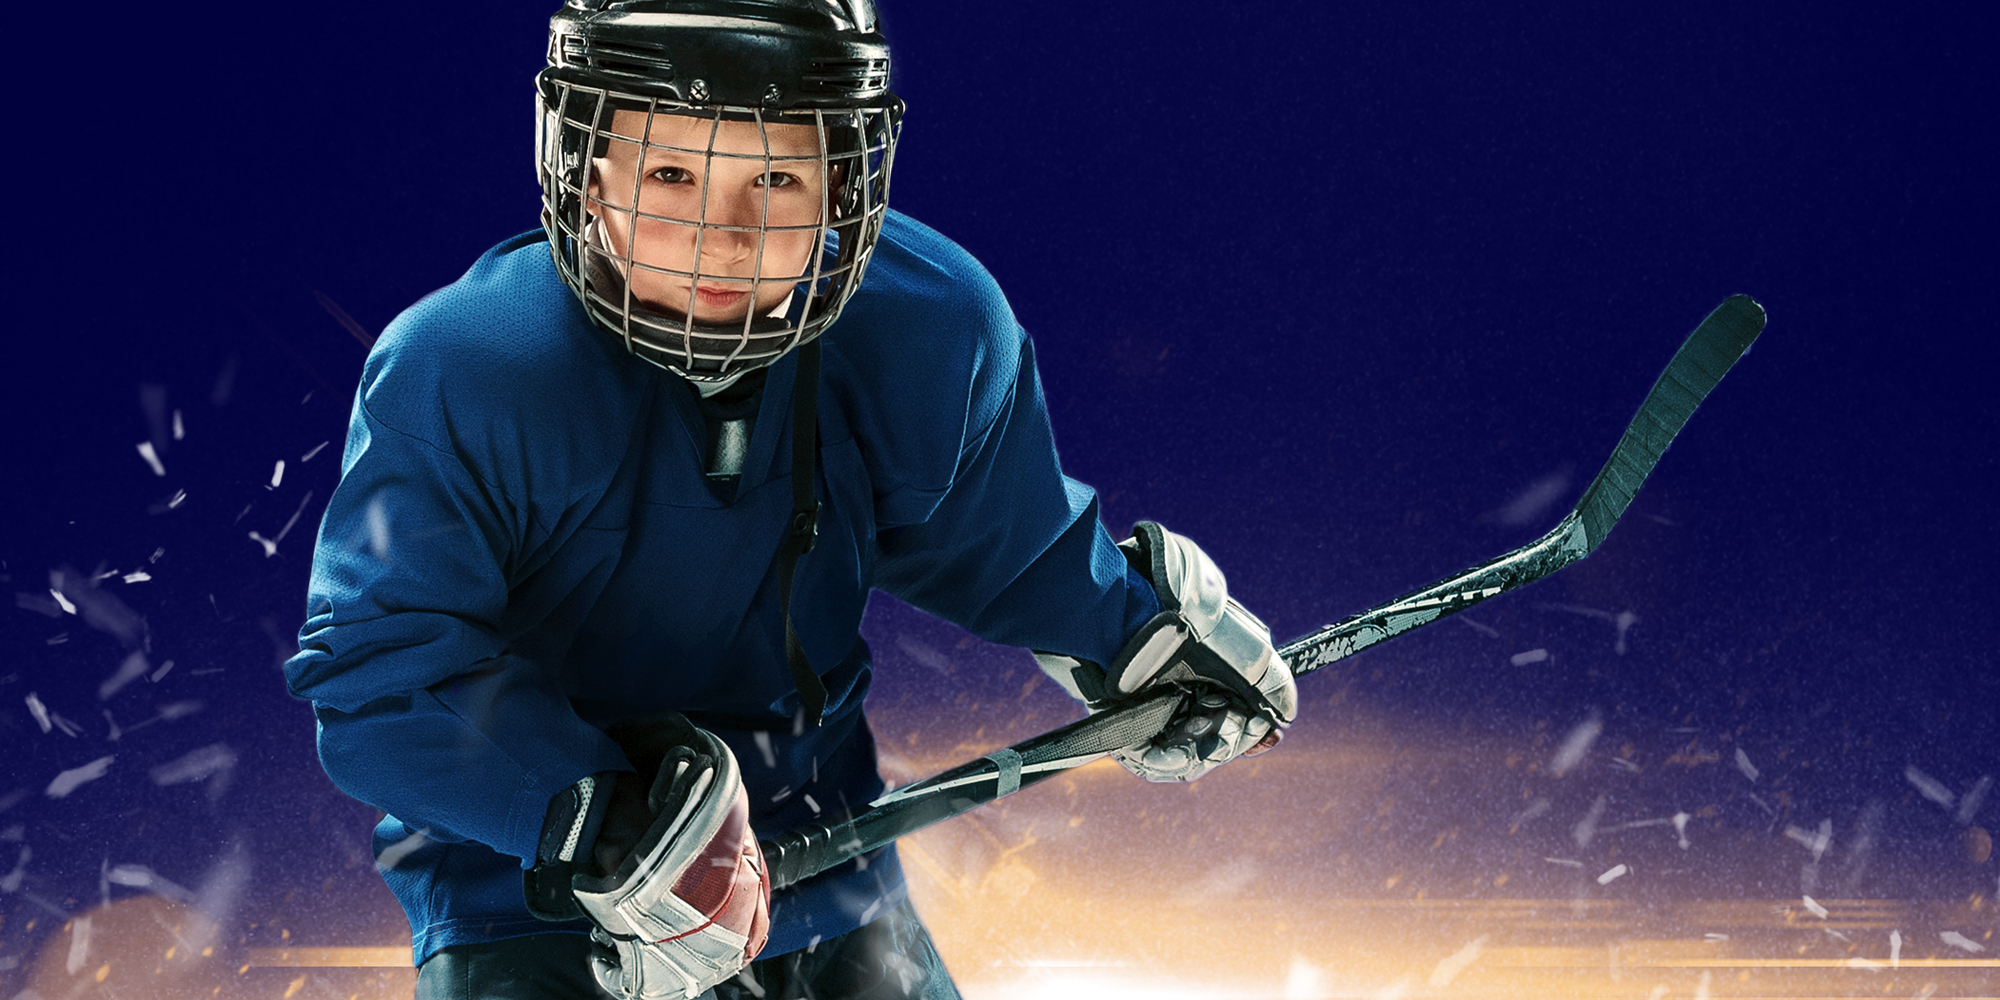 4665d608c Hockey Unlimited - Ice Sports Pro Shop - Ice Hockey Pro Shop in Finland